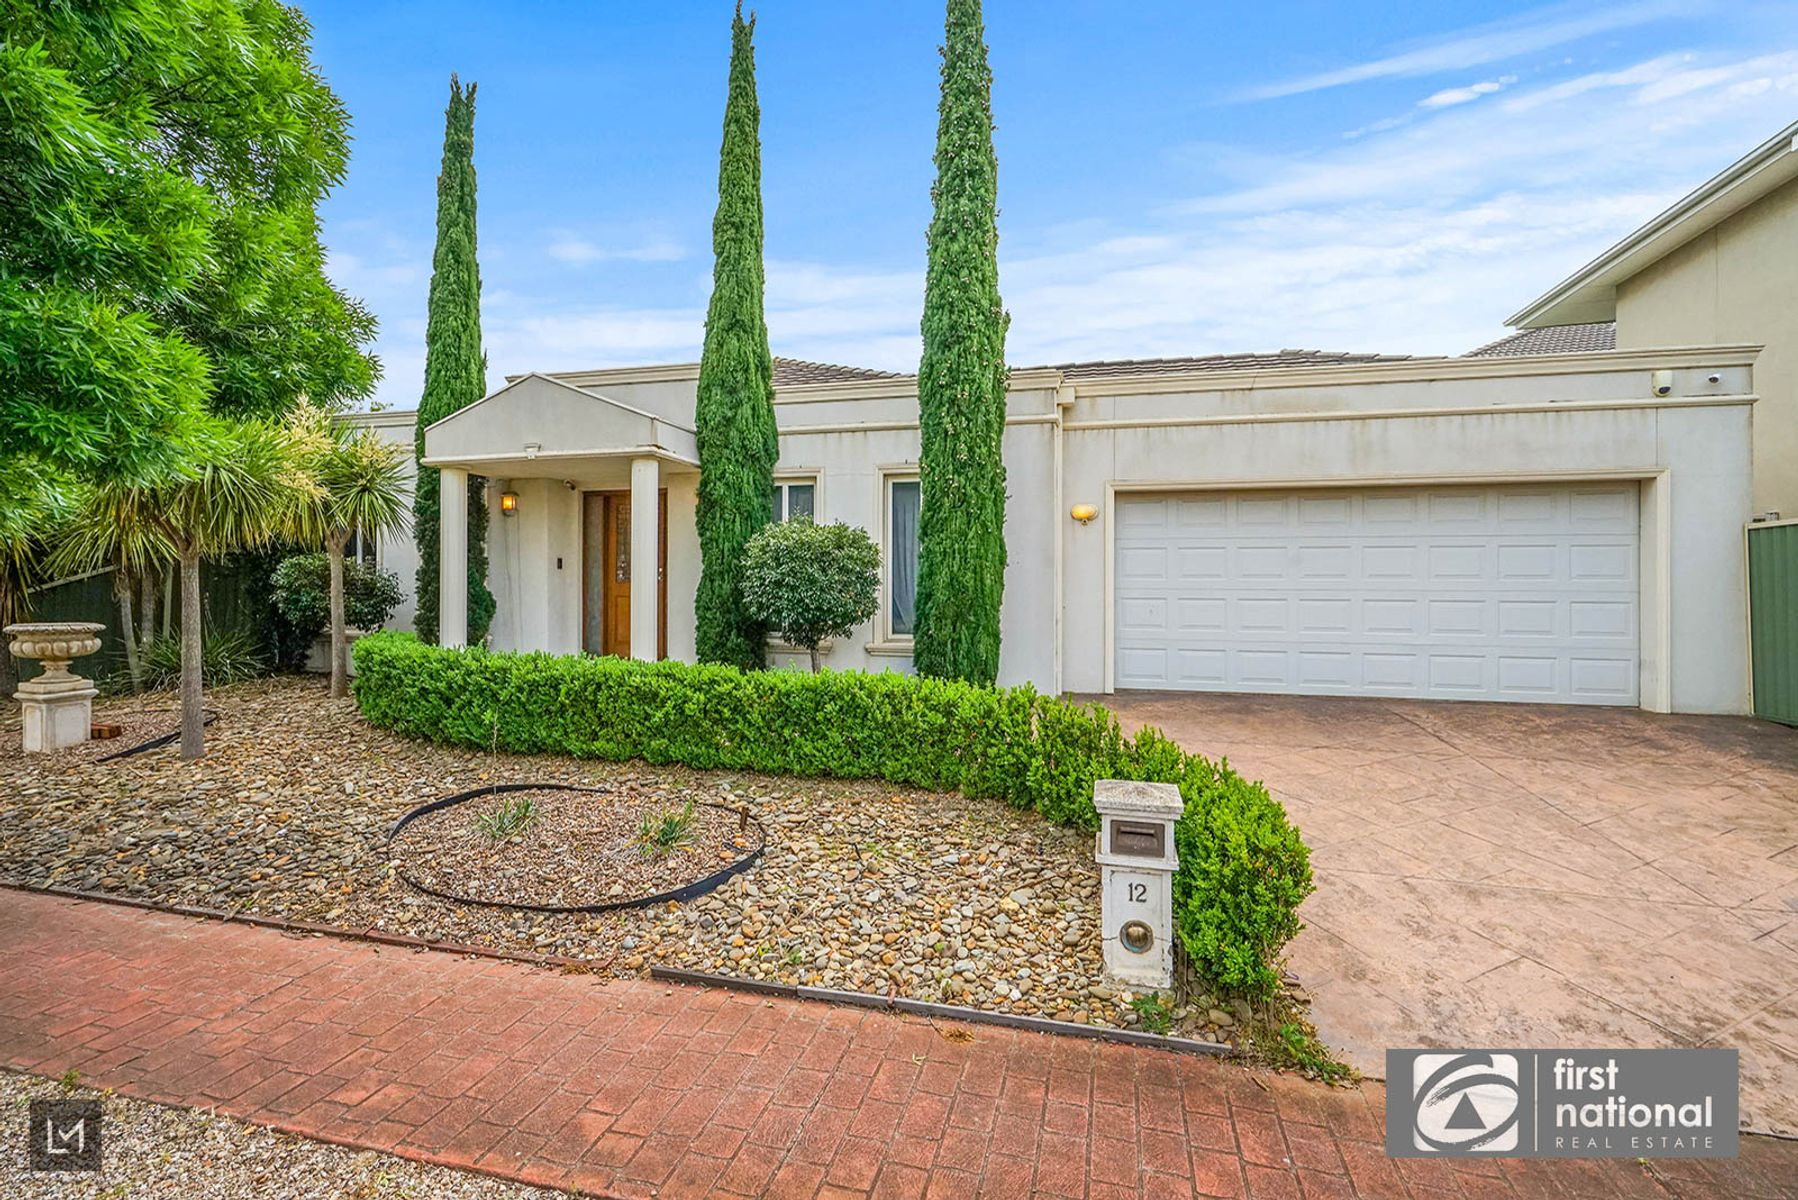 12 Shaftsbury Boulevard, Point Cook, VIC 3030